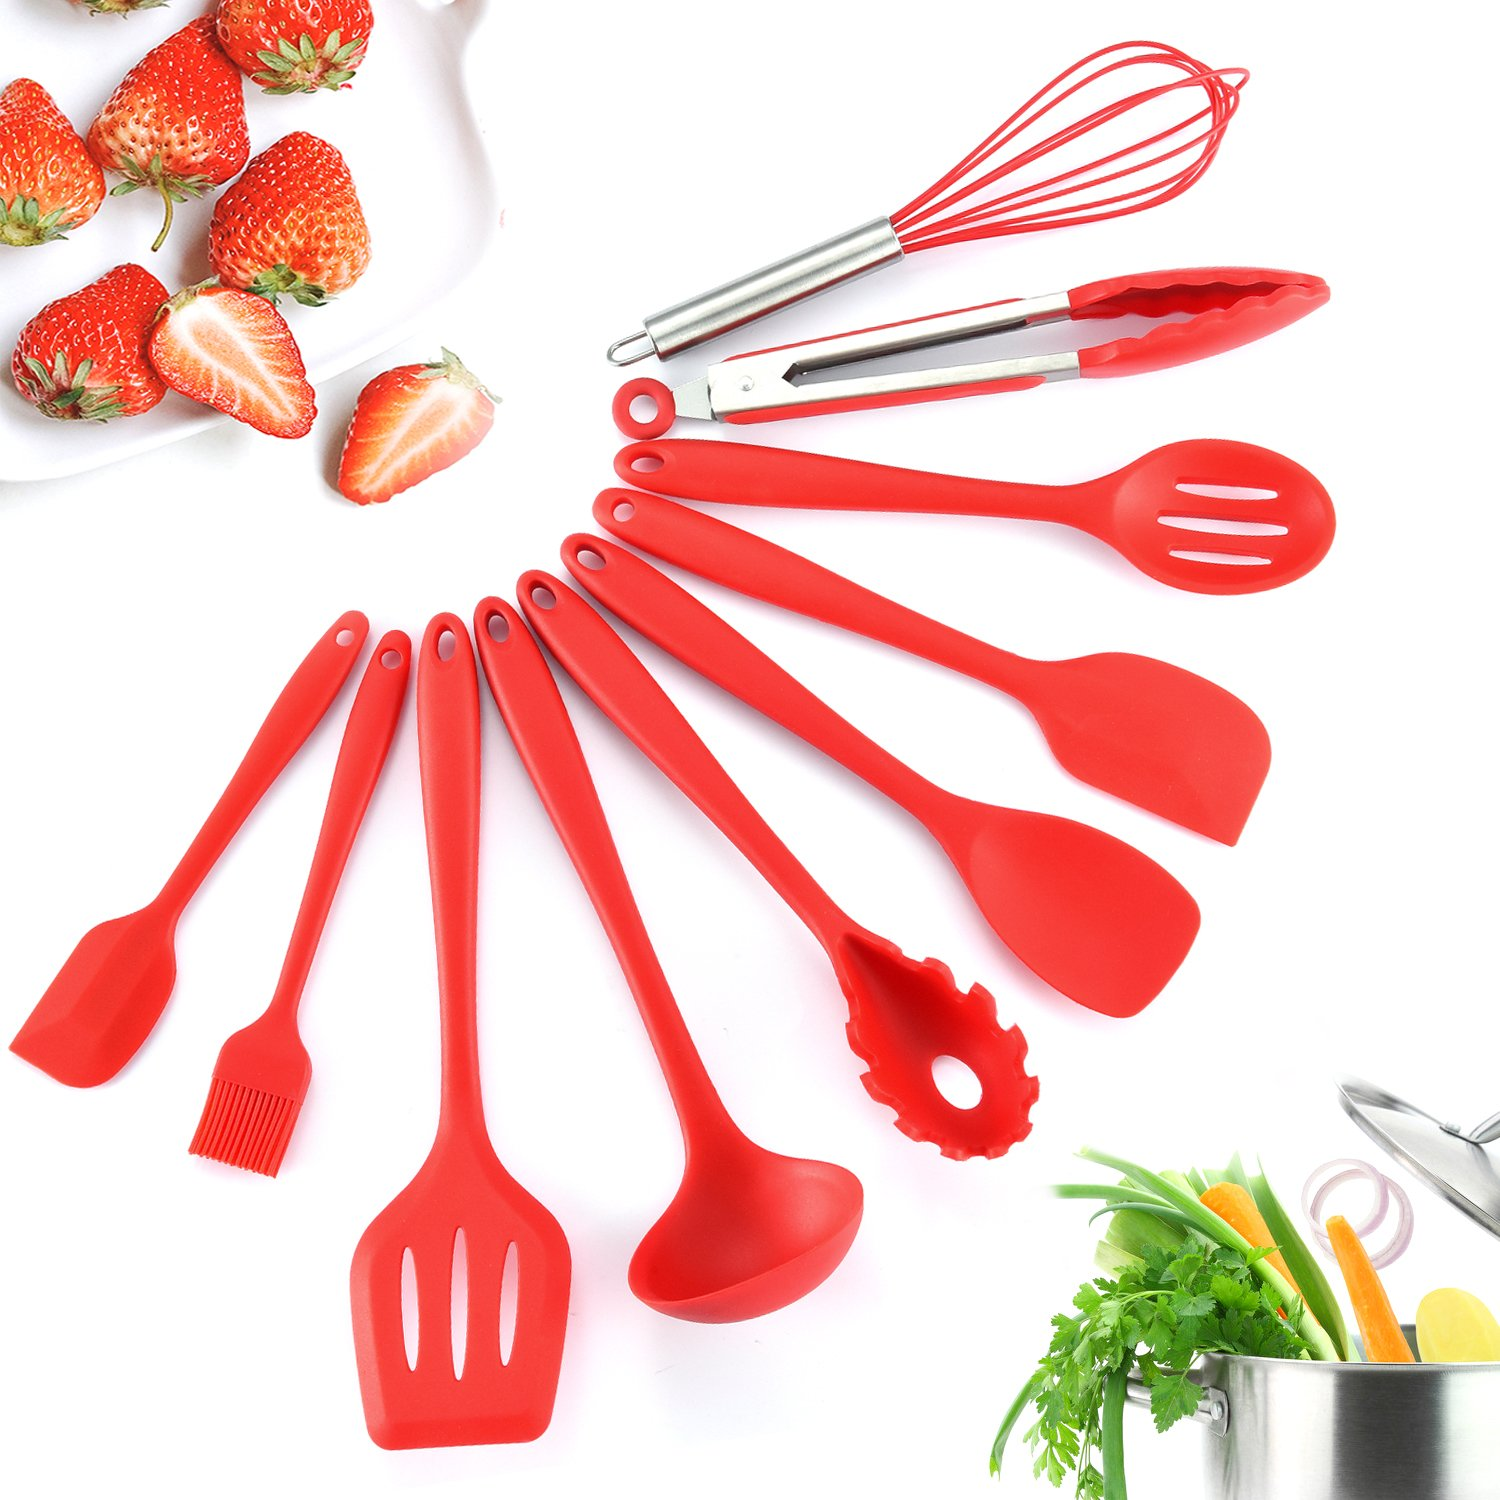 iHomey Silicone Kitchen Utensil Set, 10 Nonstick/Heat Resistant Cooking Utensils - Tongs, Whisk, Spoons, Spatulas, Ladle, Flexible Turner, Pasta Server, Brush - Dishwasher Safe (Red)